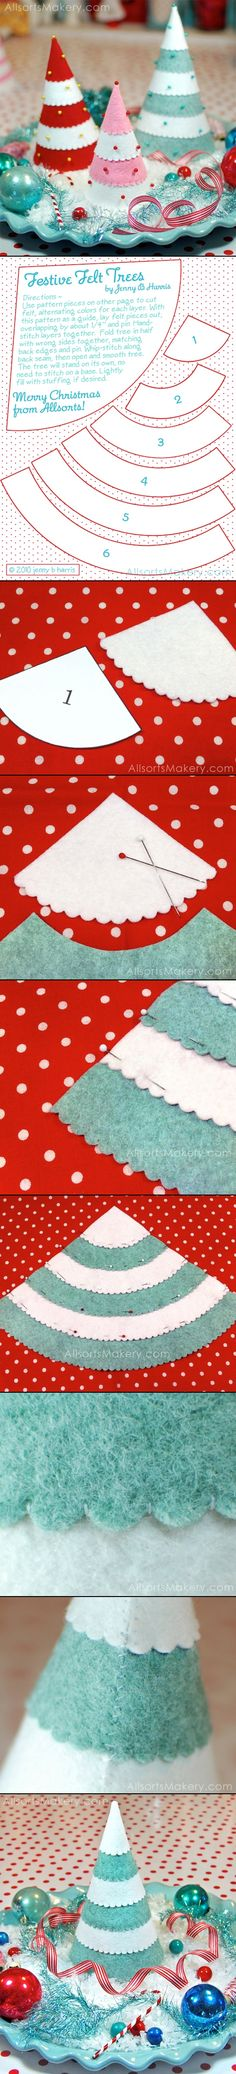 Red white turquoise & pink kitchy felt Christmas Trees